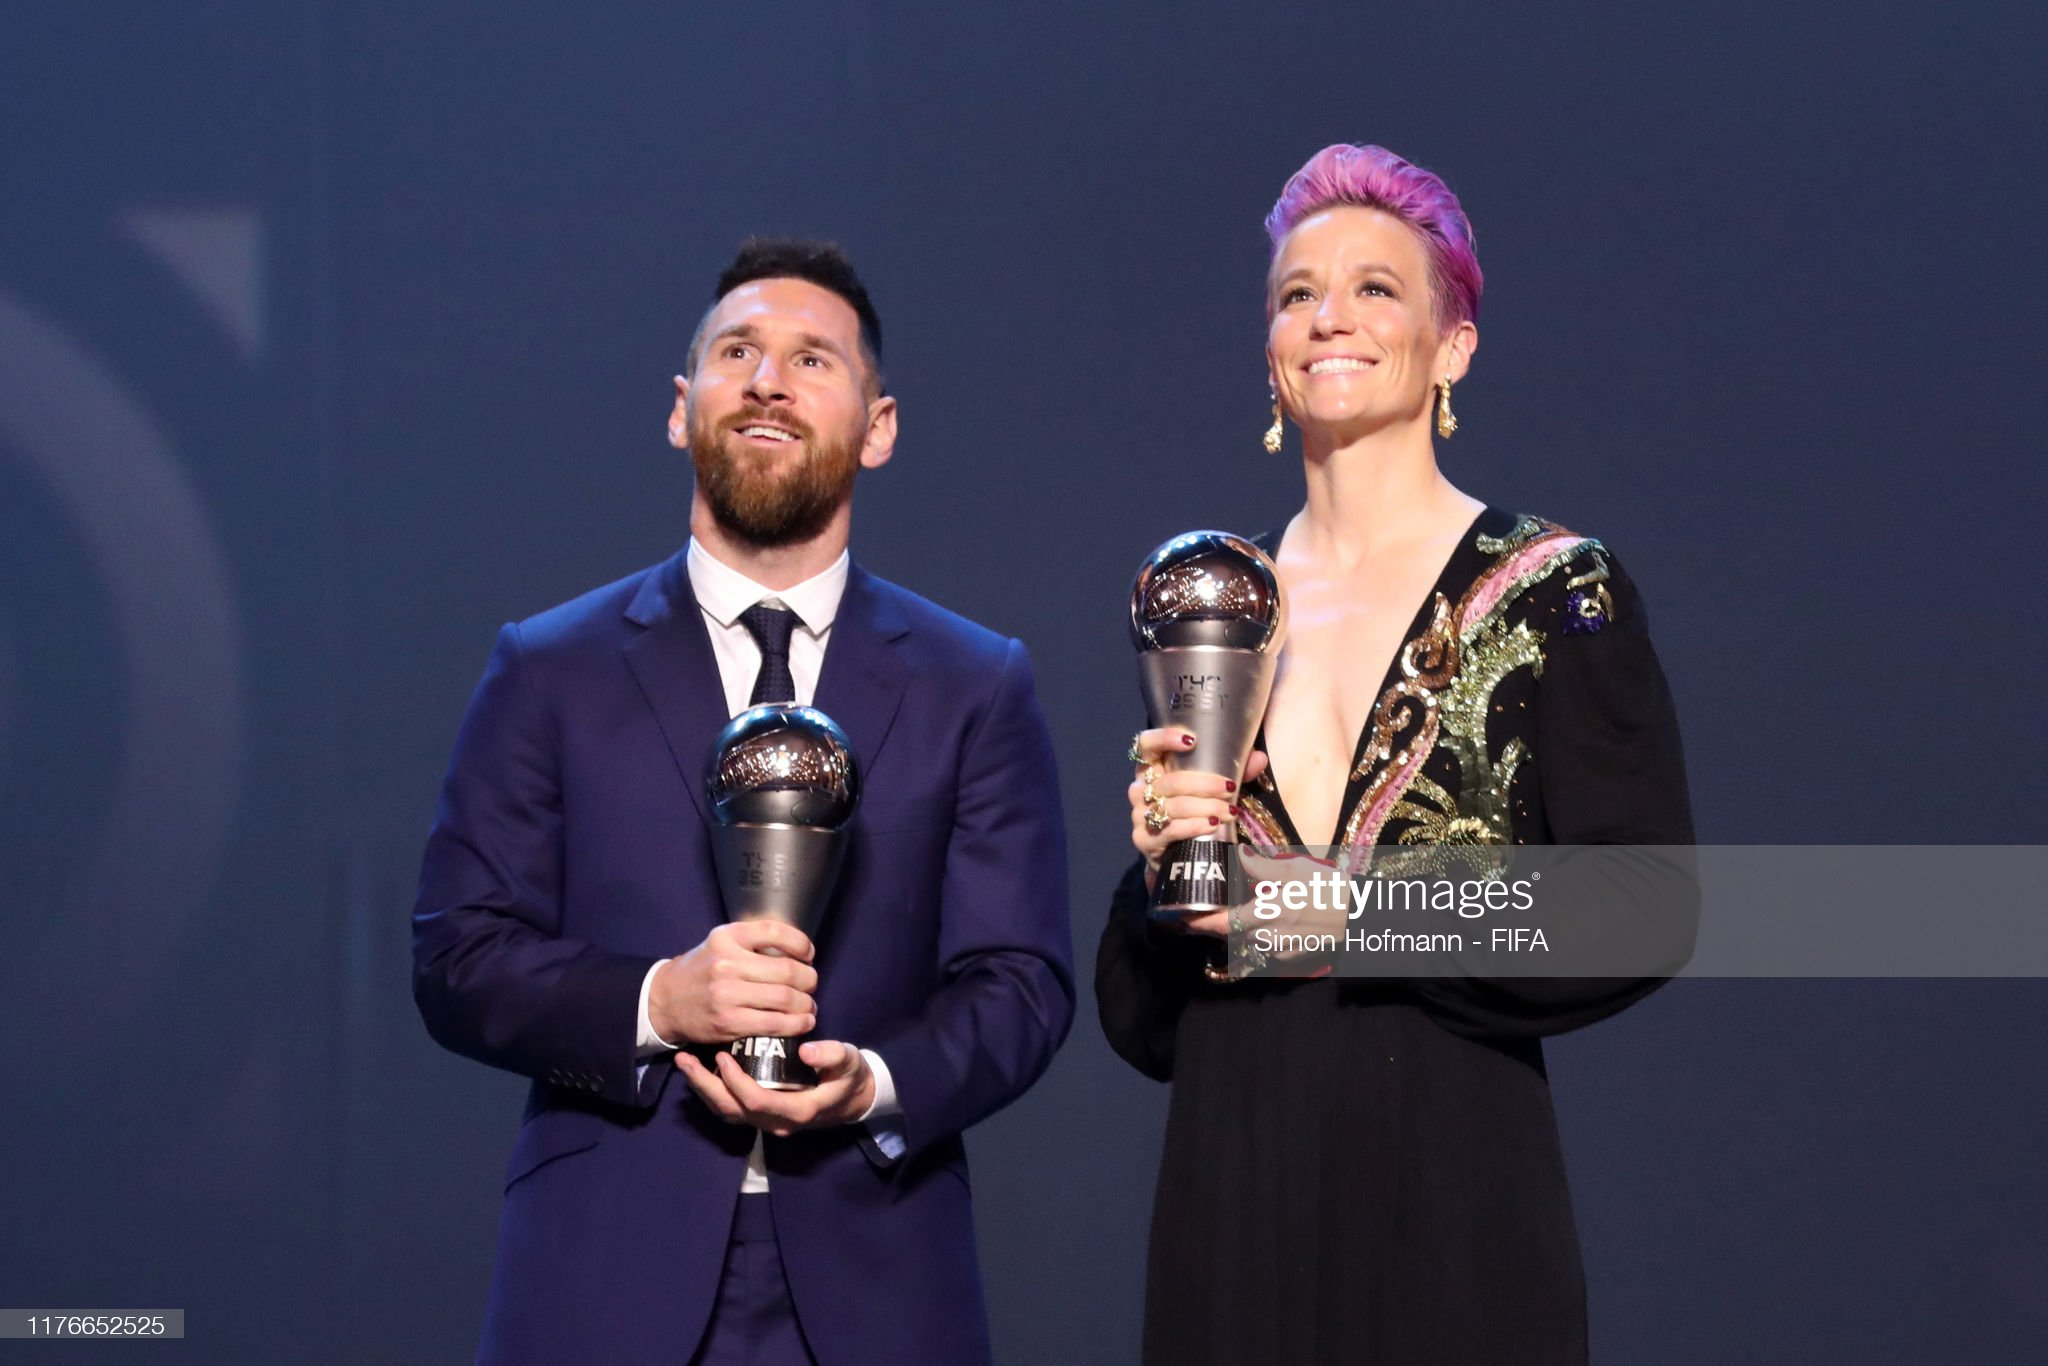 The Best FIFA Football Awards 2019 The-best-fifa-womens-player-award-winner-megan-rapinoe-of-reign-fc-picture-id1176652525?s=2048x2048